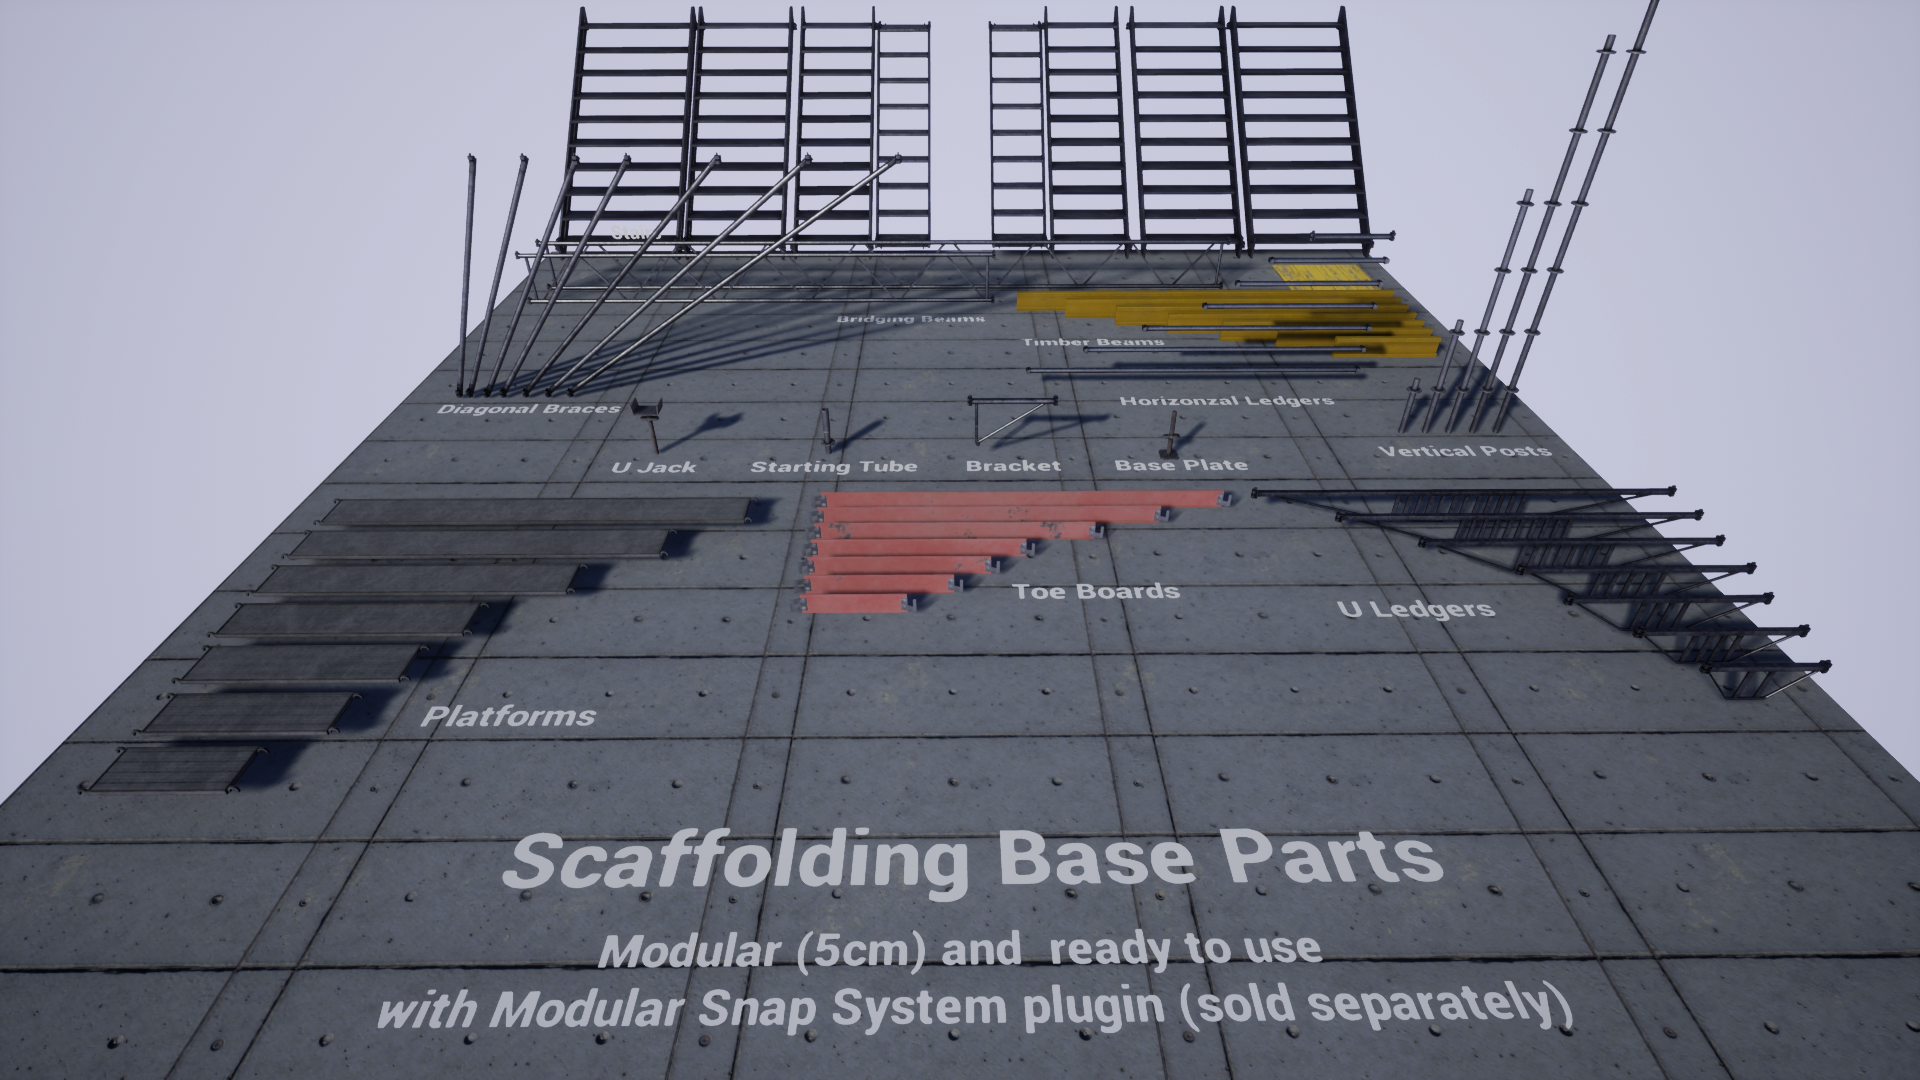 Scaffolding base parts – Inu Games